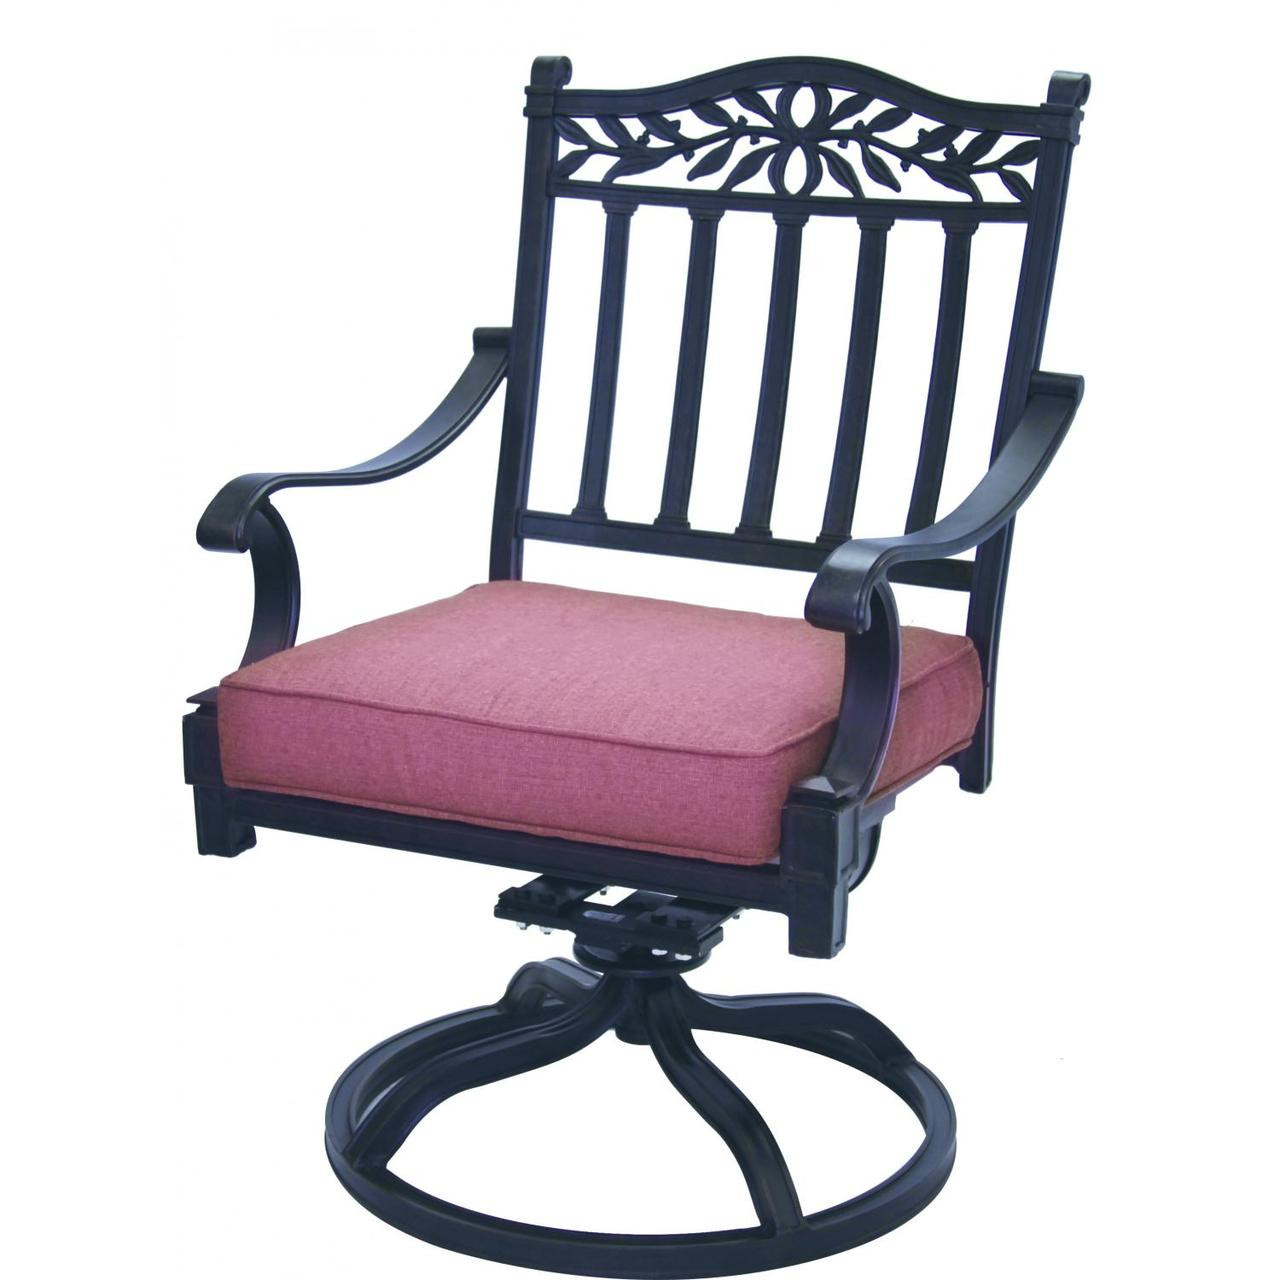 Terrific Darlee Charleston Patio Swivel Rocker Dining Chair Antique Bronze Interior Design Ideas Inesswwsoteloinfo